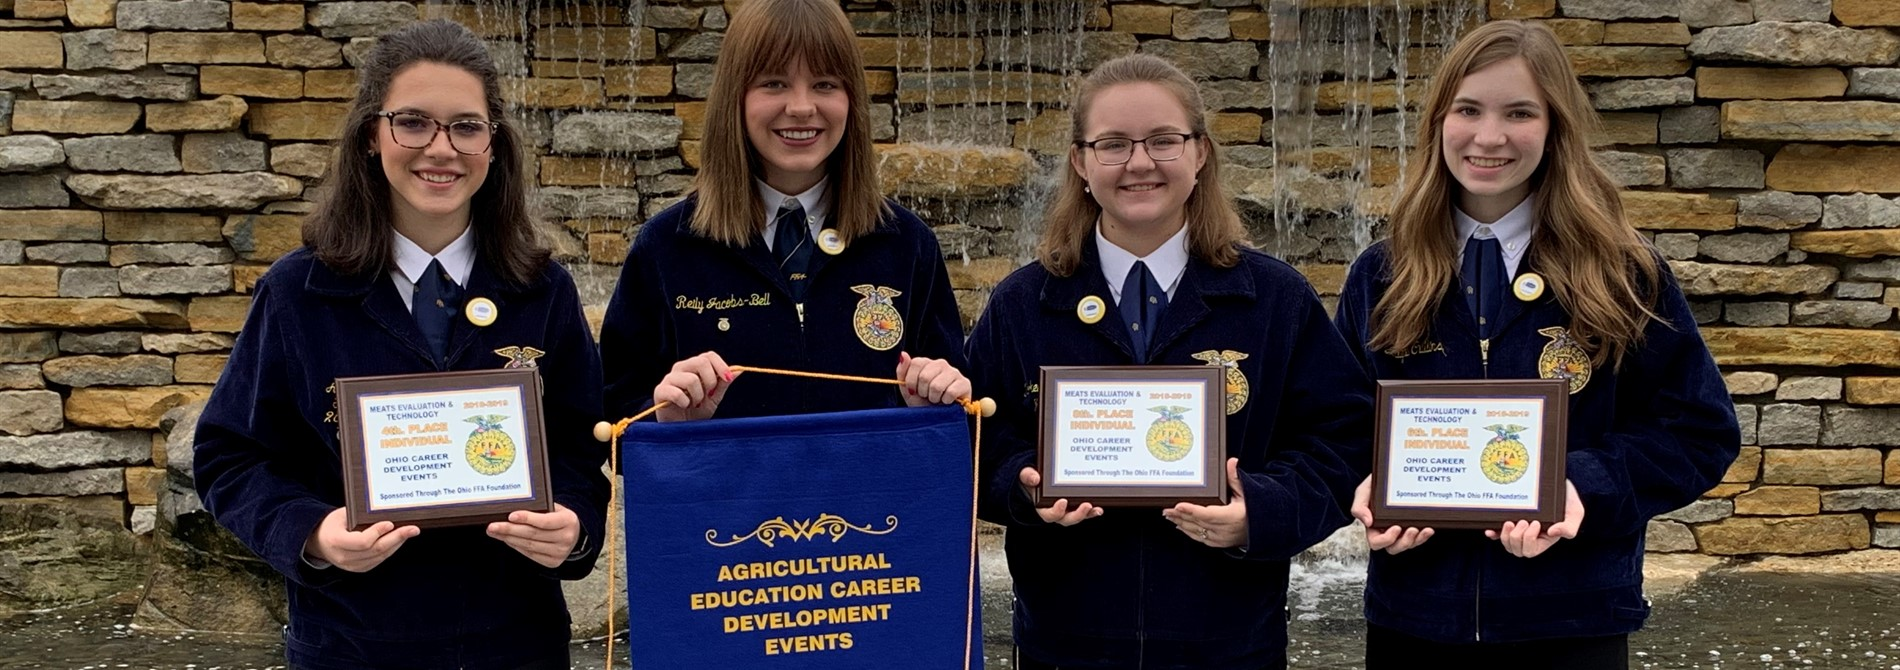 FFA Meats & Technology Team received 2nd Place Award State Banner!